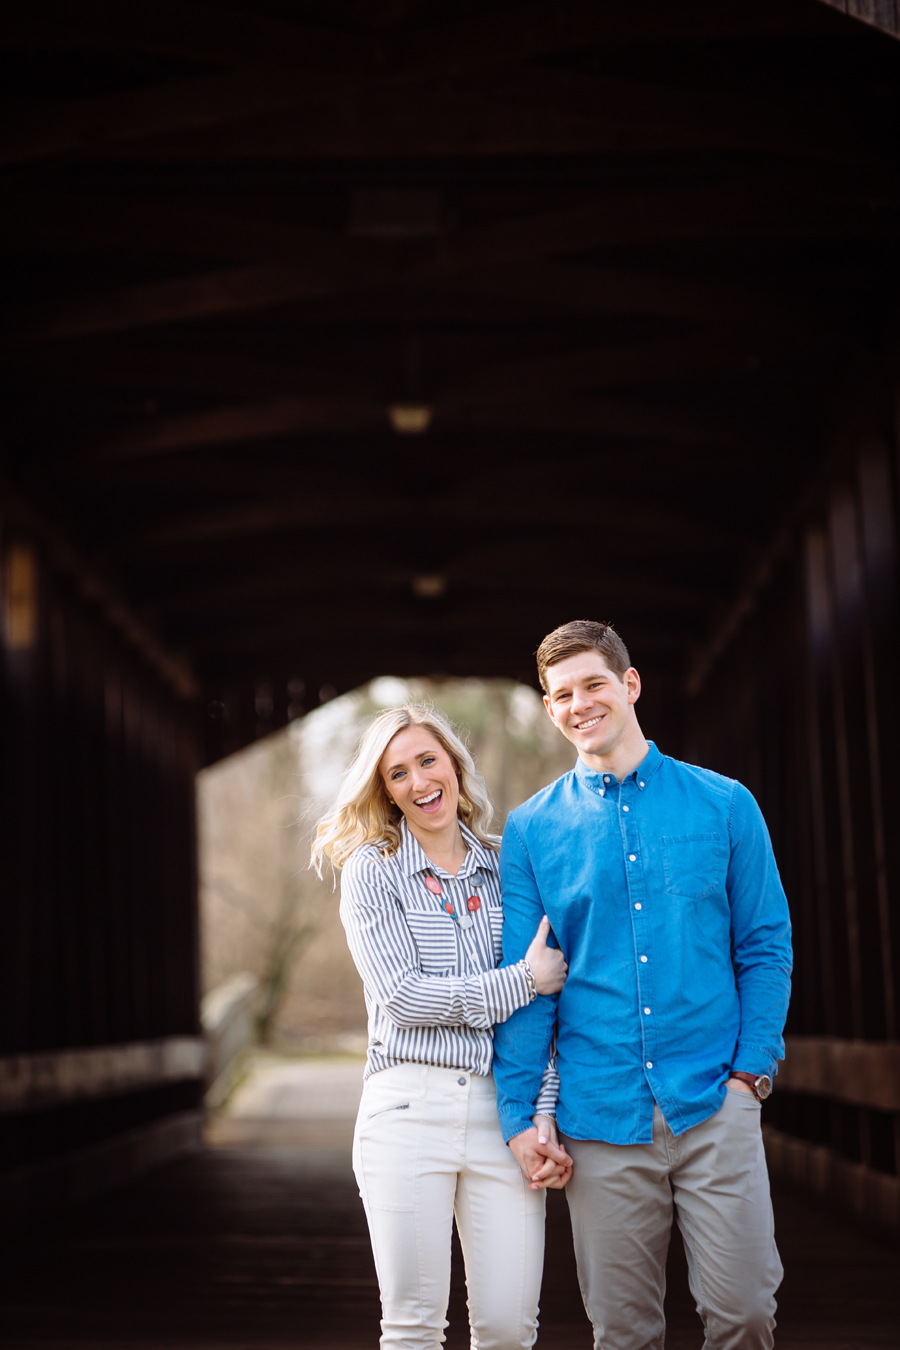 engagement-photography-downtown-grand-rapids21.jpg